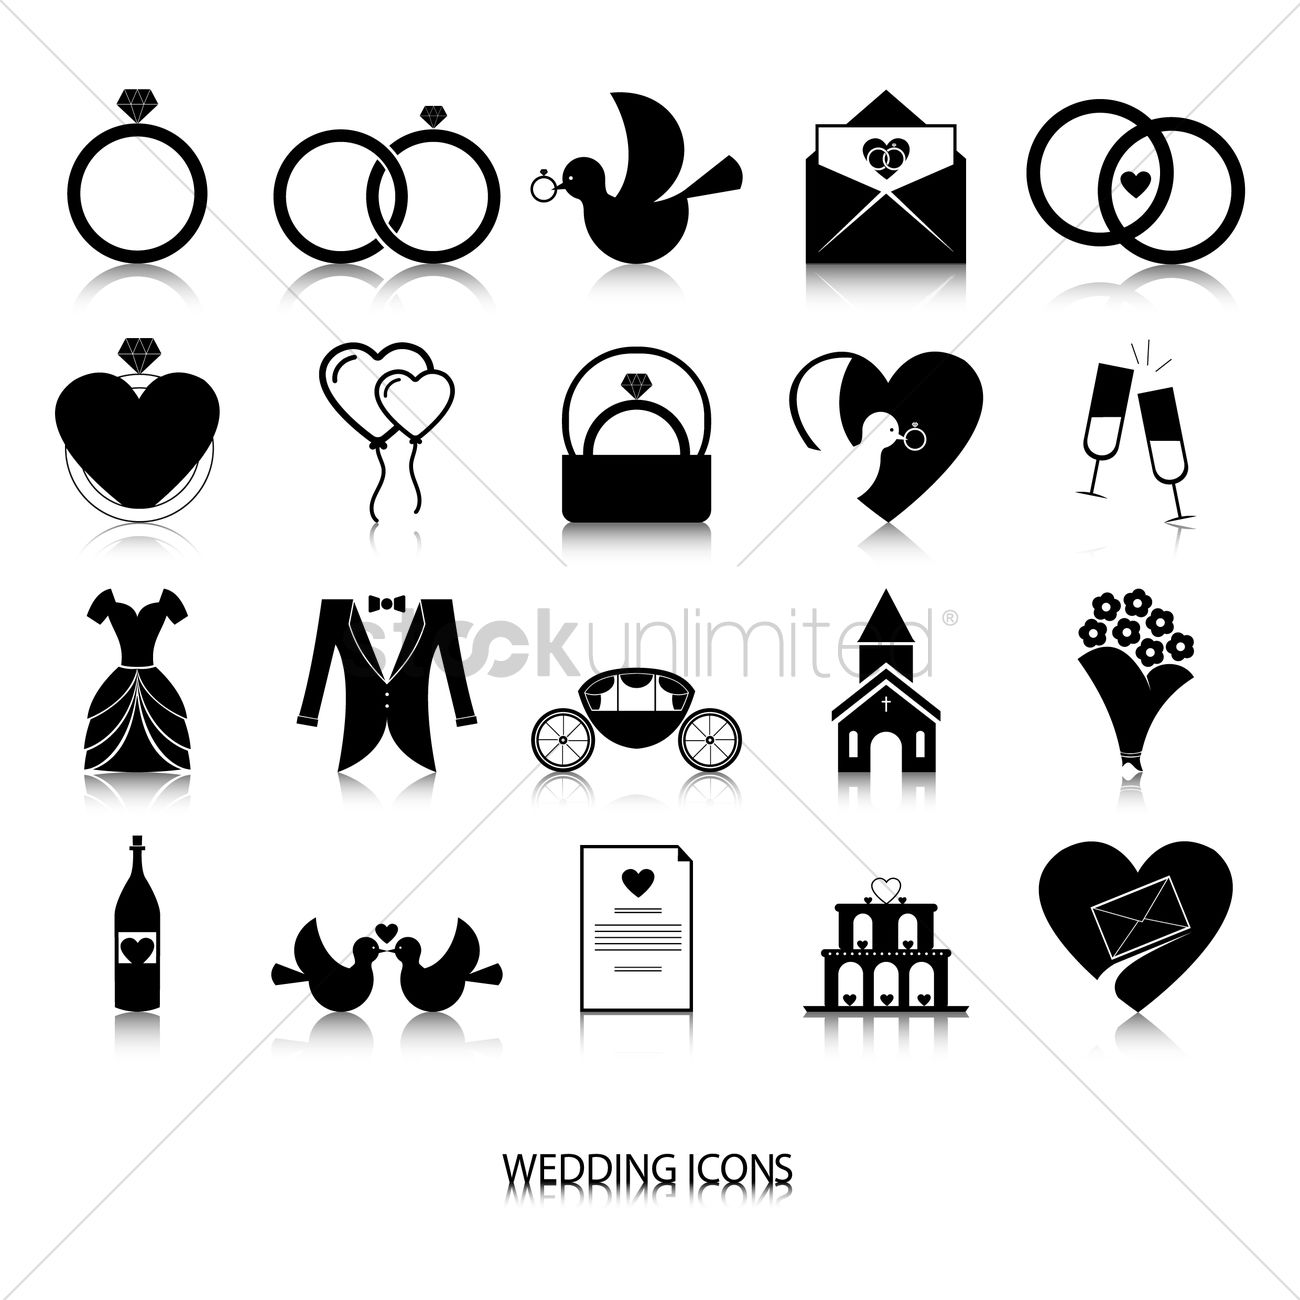 Collection Of Wedding Icons Vector Image